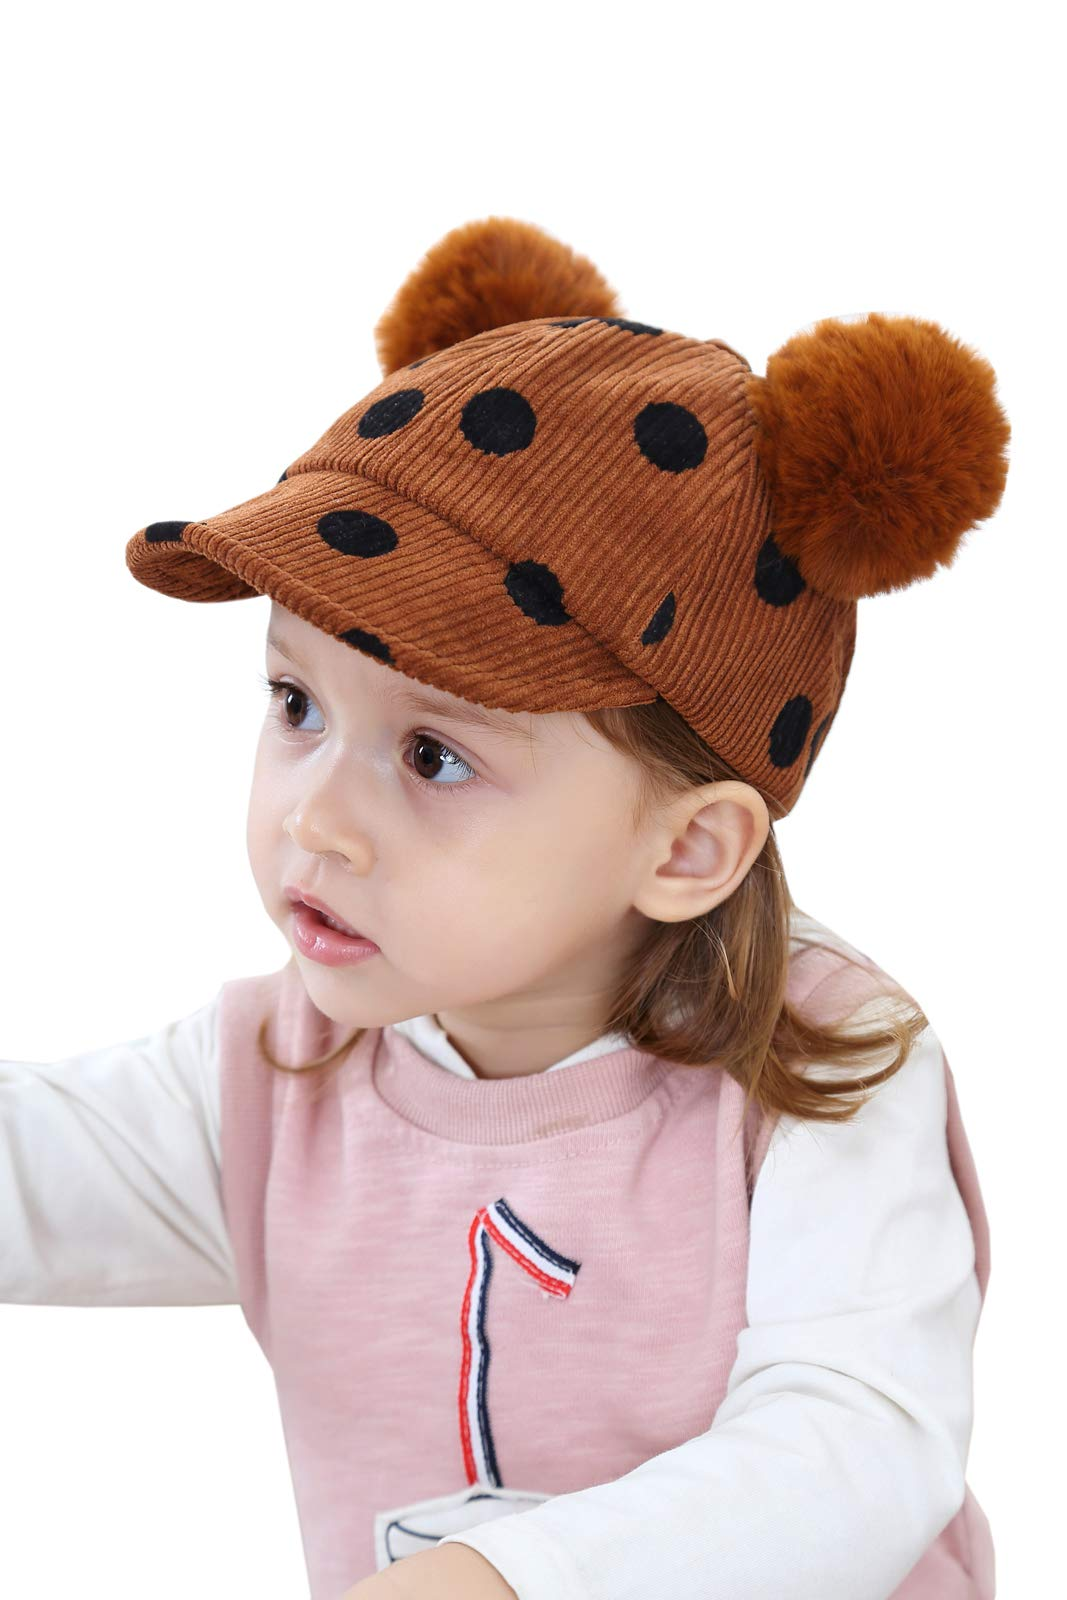 YueLian Baby Girls Polka Dots Pom Pom Corduroy Short Brim Baseball Beanie Caps (Brown)